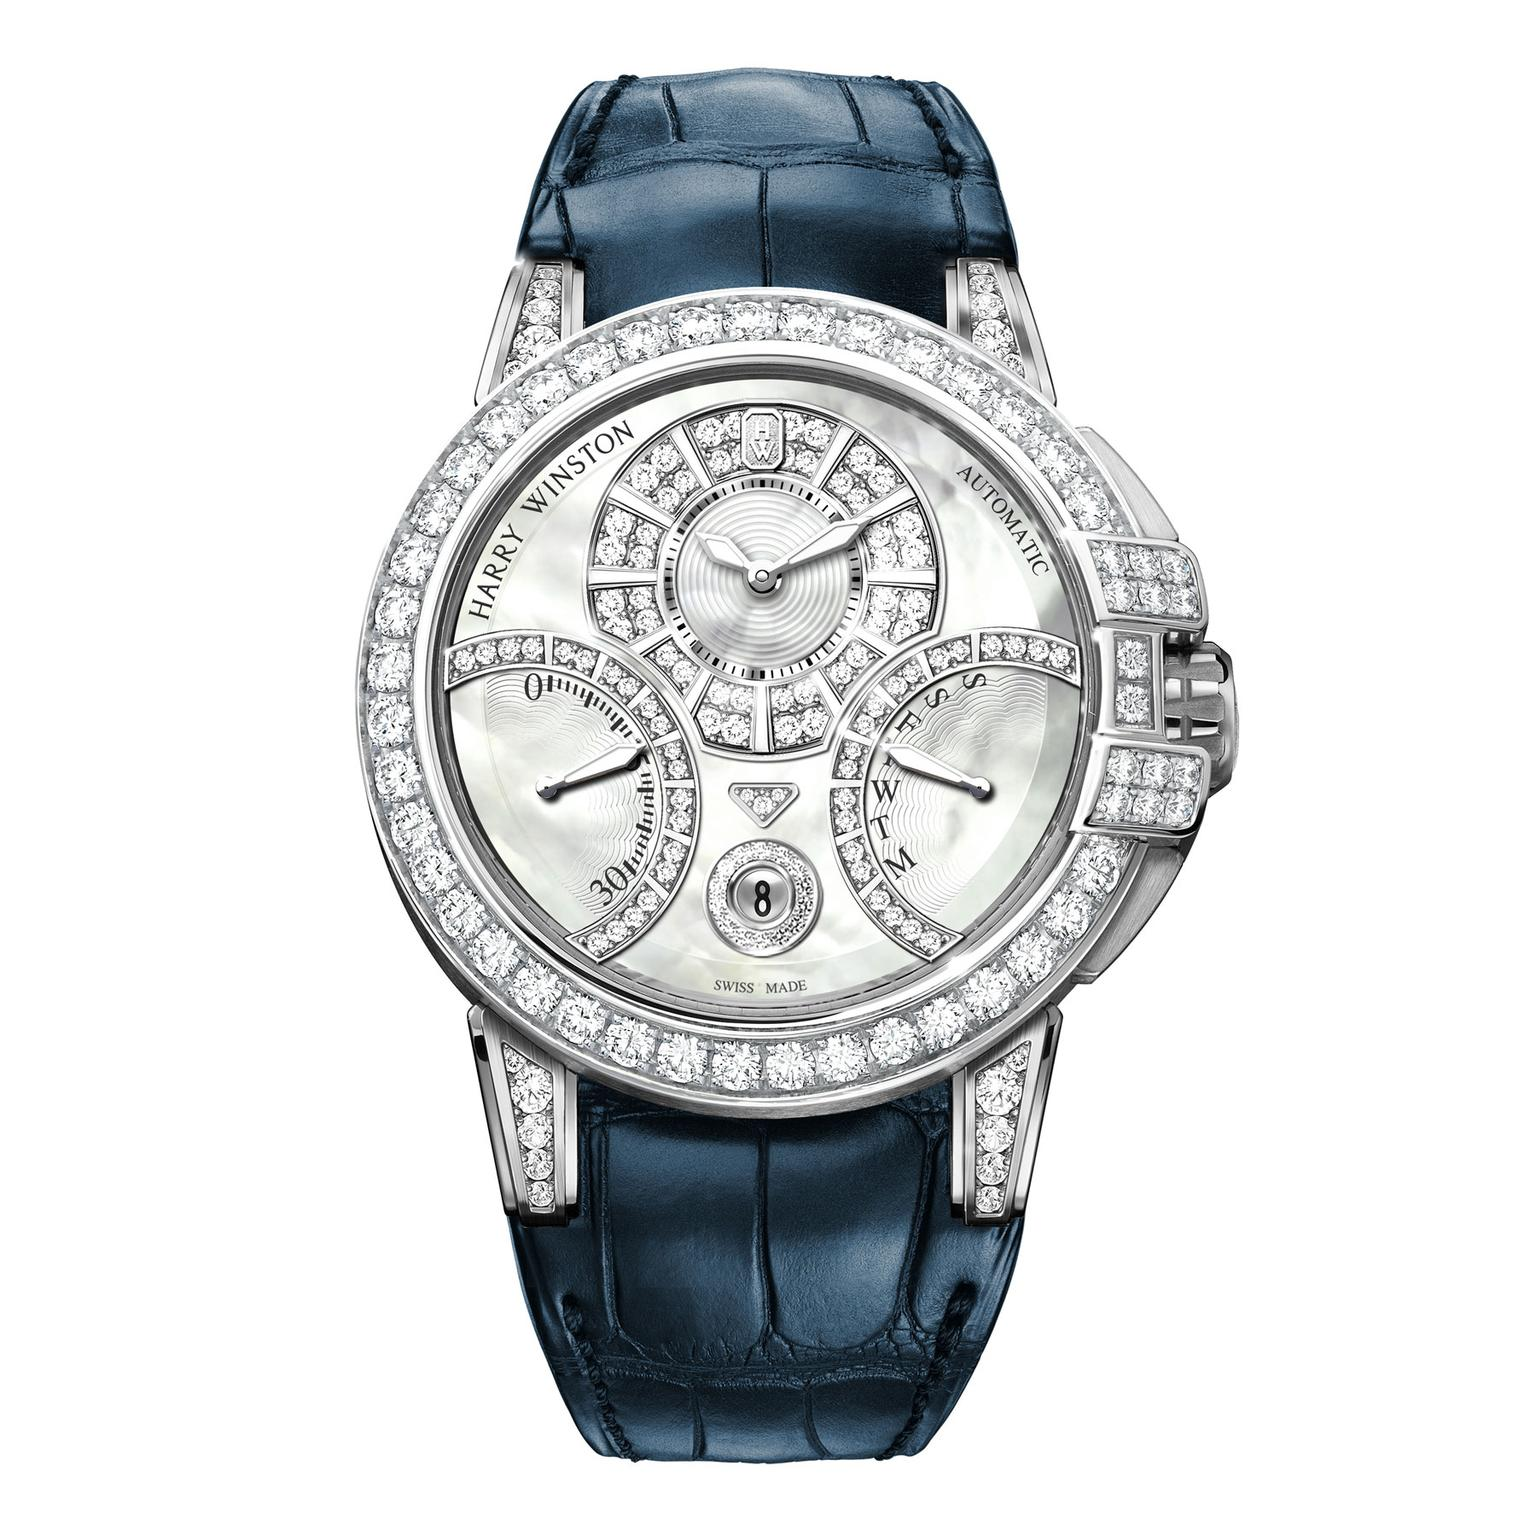 Ocean Biretrograde Automatic Watch Harry Winston The Jewellery Editor